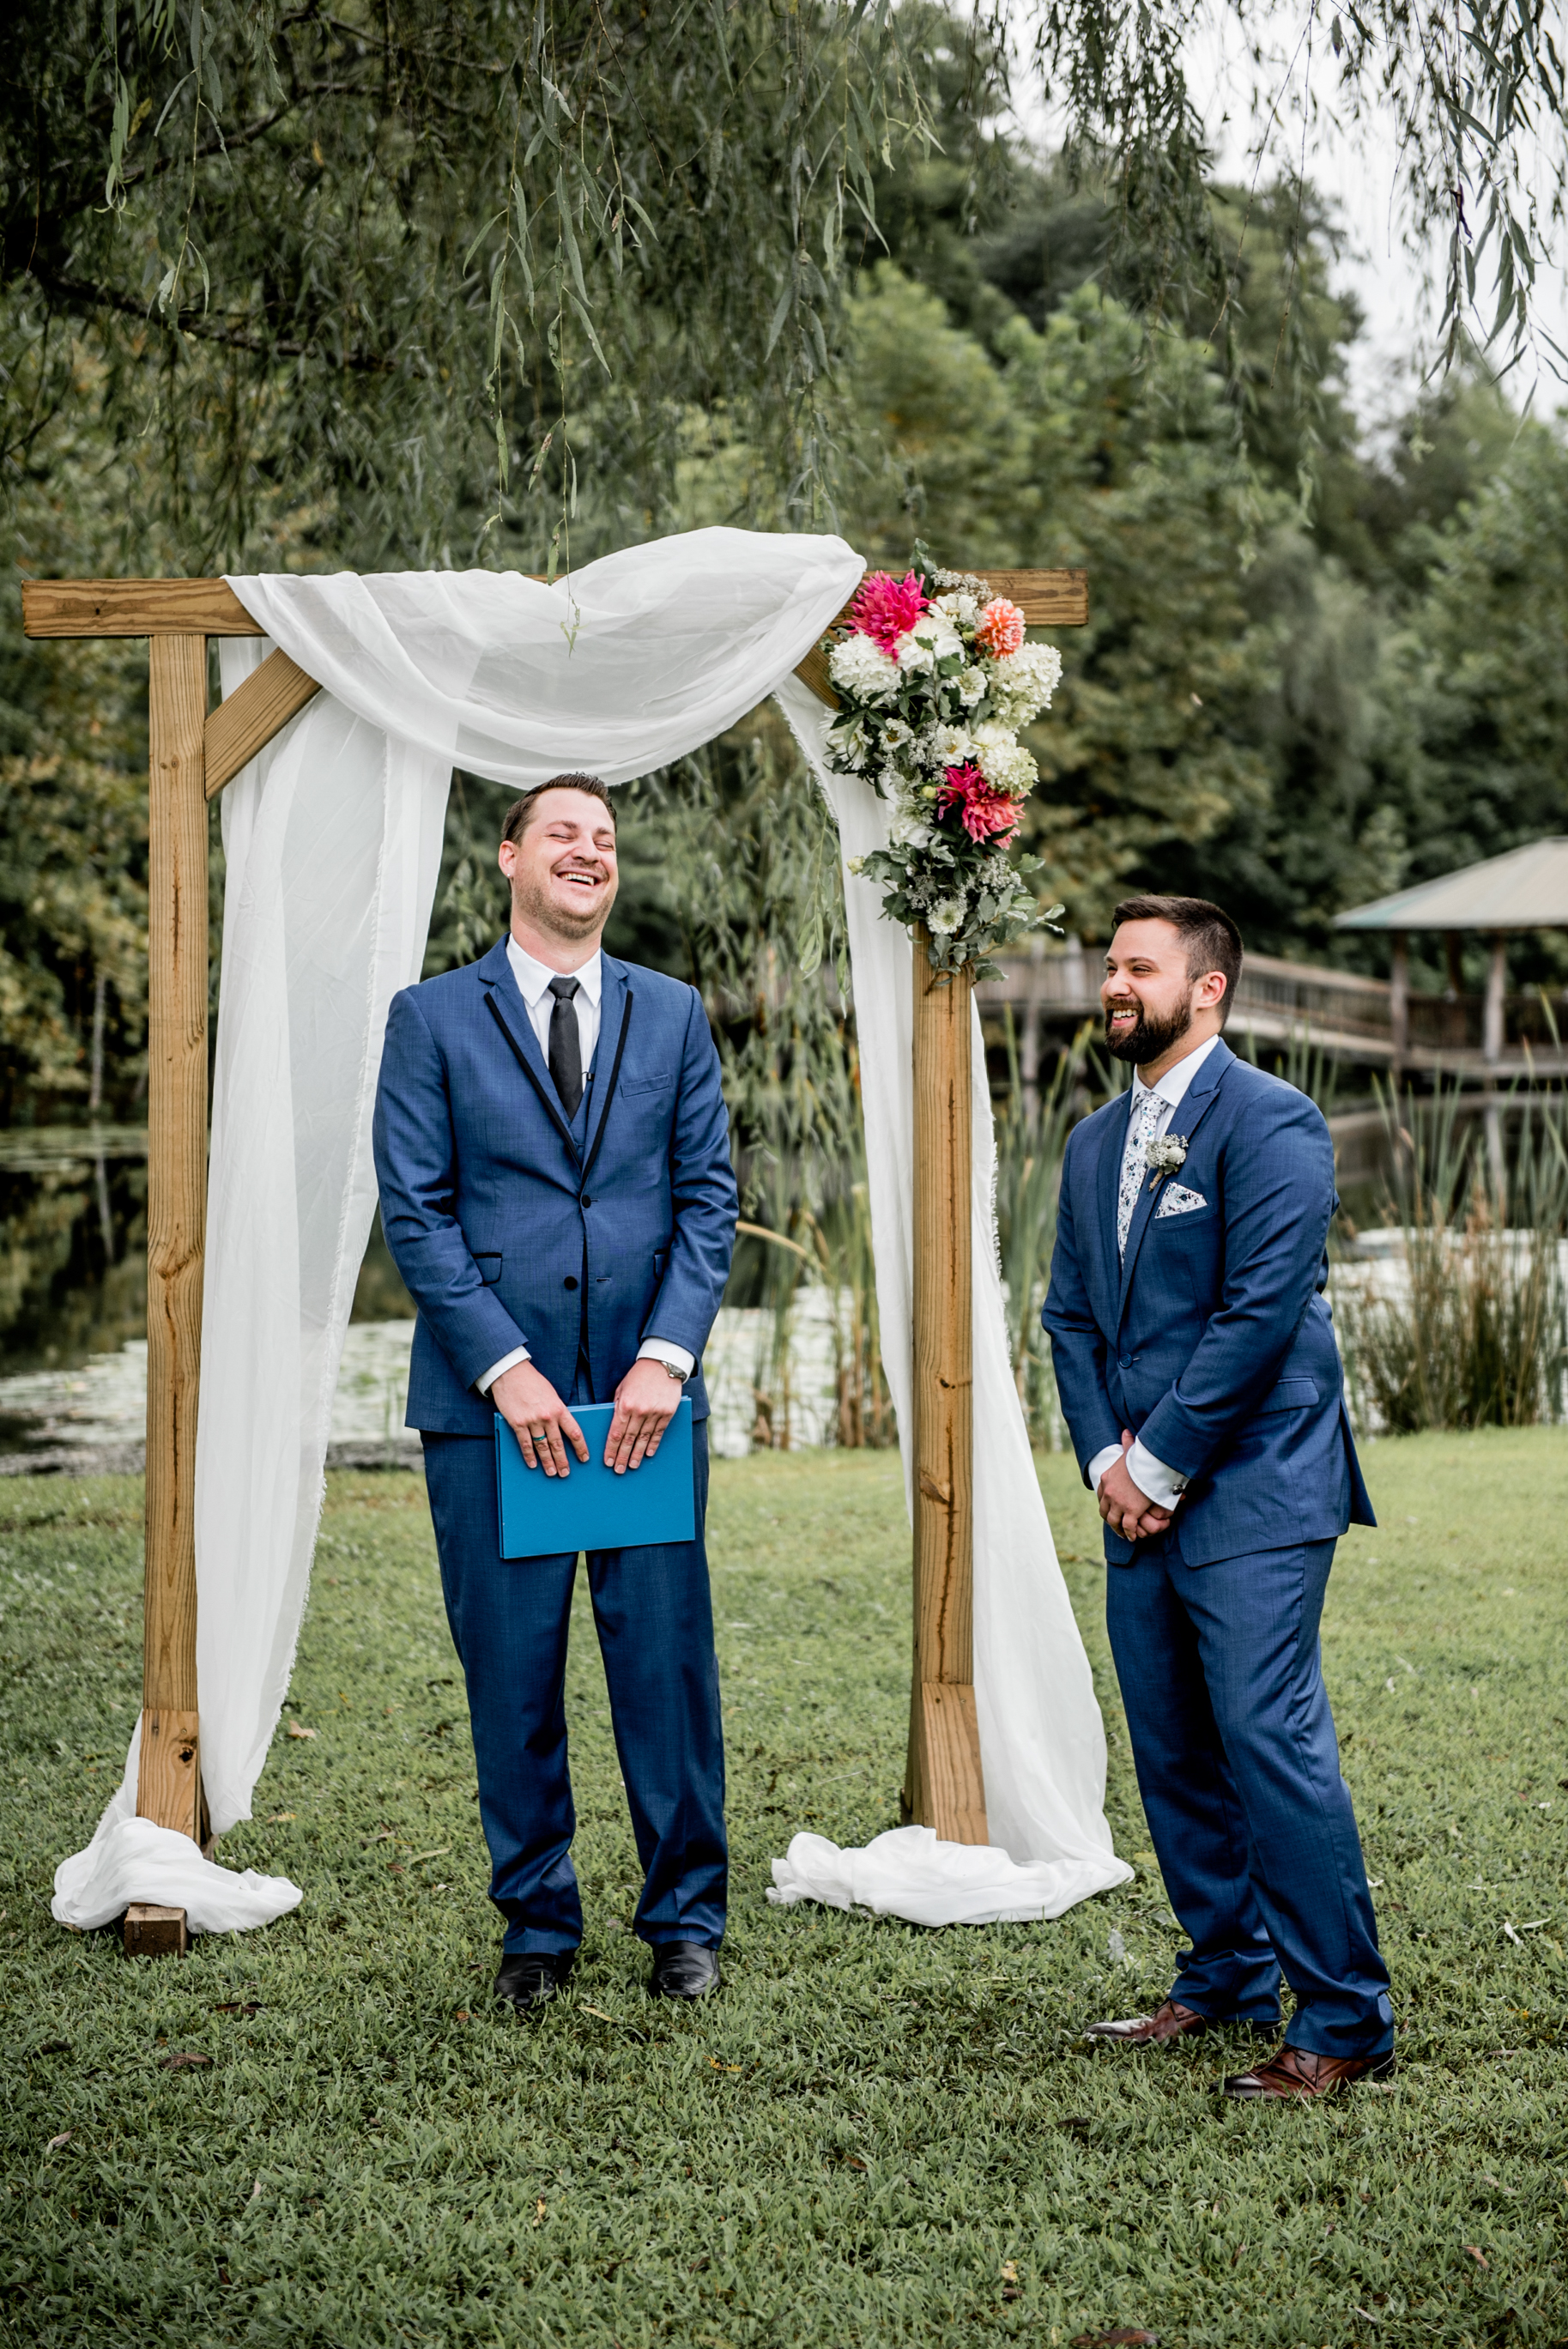 Groom and officiant laugh